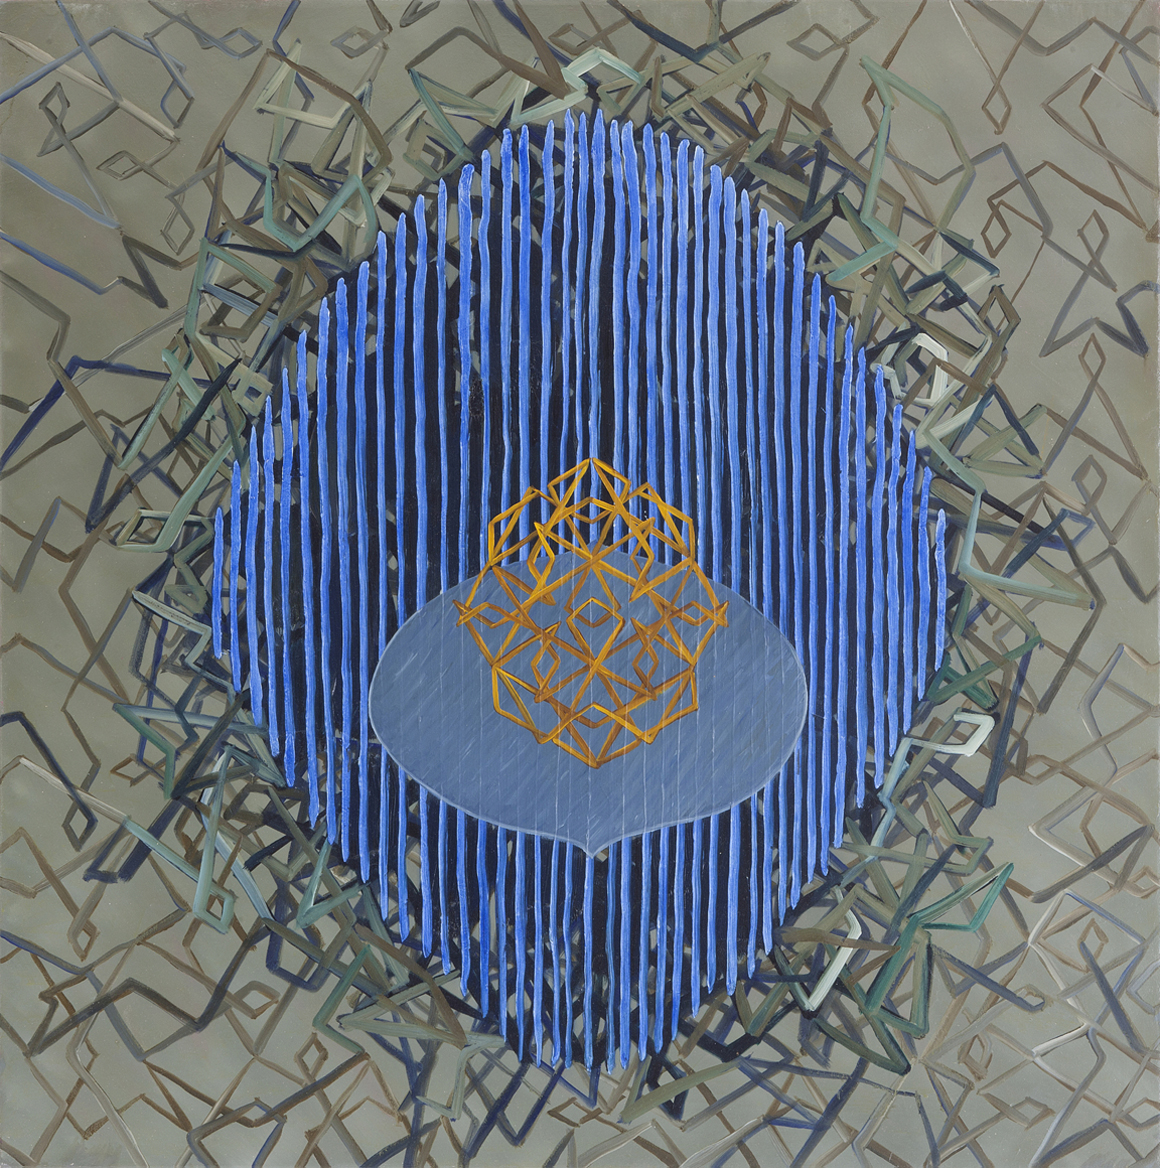 <p><em>Silver Tongue</em><span class='media'>oil on canvas</span>36 x 32 in  (91.4 x 81.3 cm)<br>2013<br><a class='inquire' href='mailto:info@gildargallery.com?subject=Artwork Inquiry PEVE0002&body=I am interested in finding out more about Silver Tongue by Peter Everett'>Inquire</a></p>